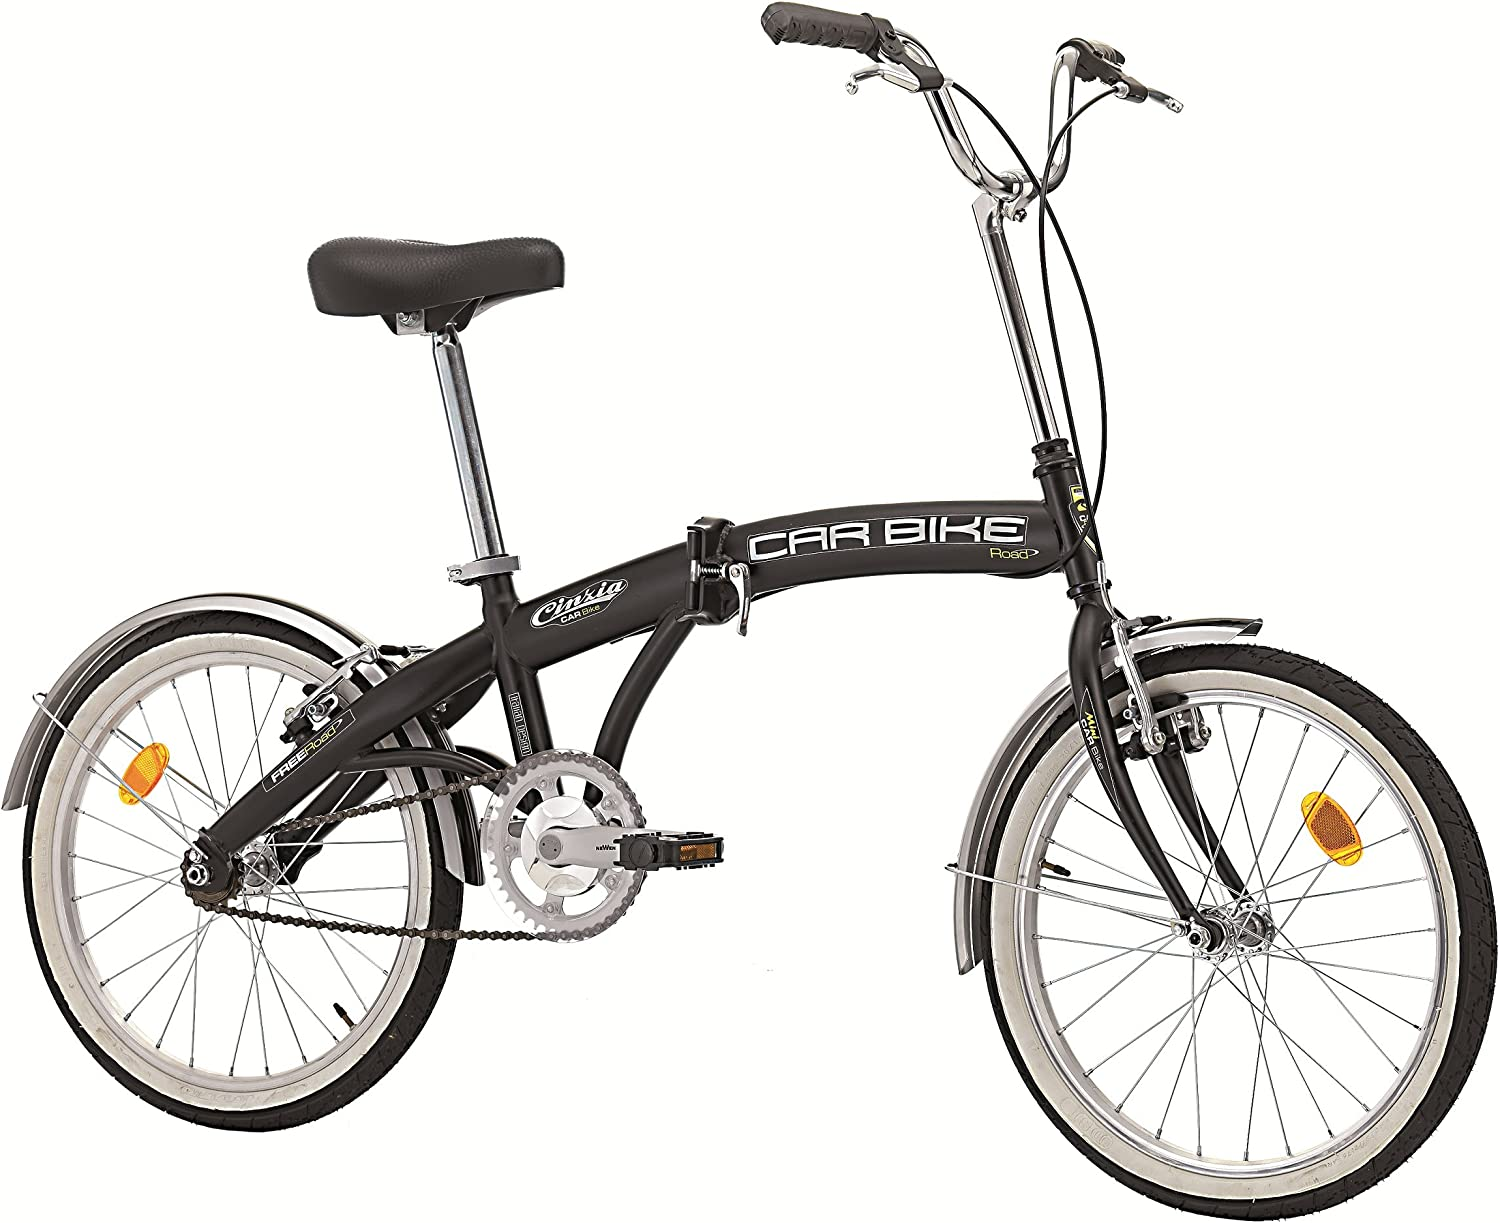 Bicicleta plegable «Car Bike» de acero, 20 pulgadas, color negro ...